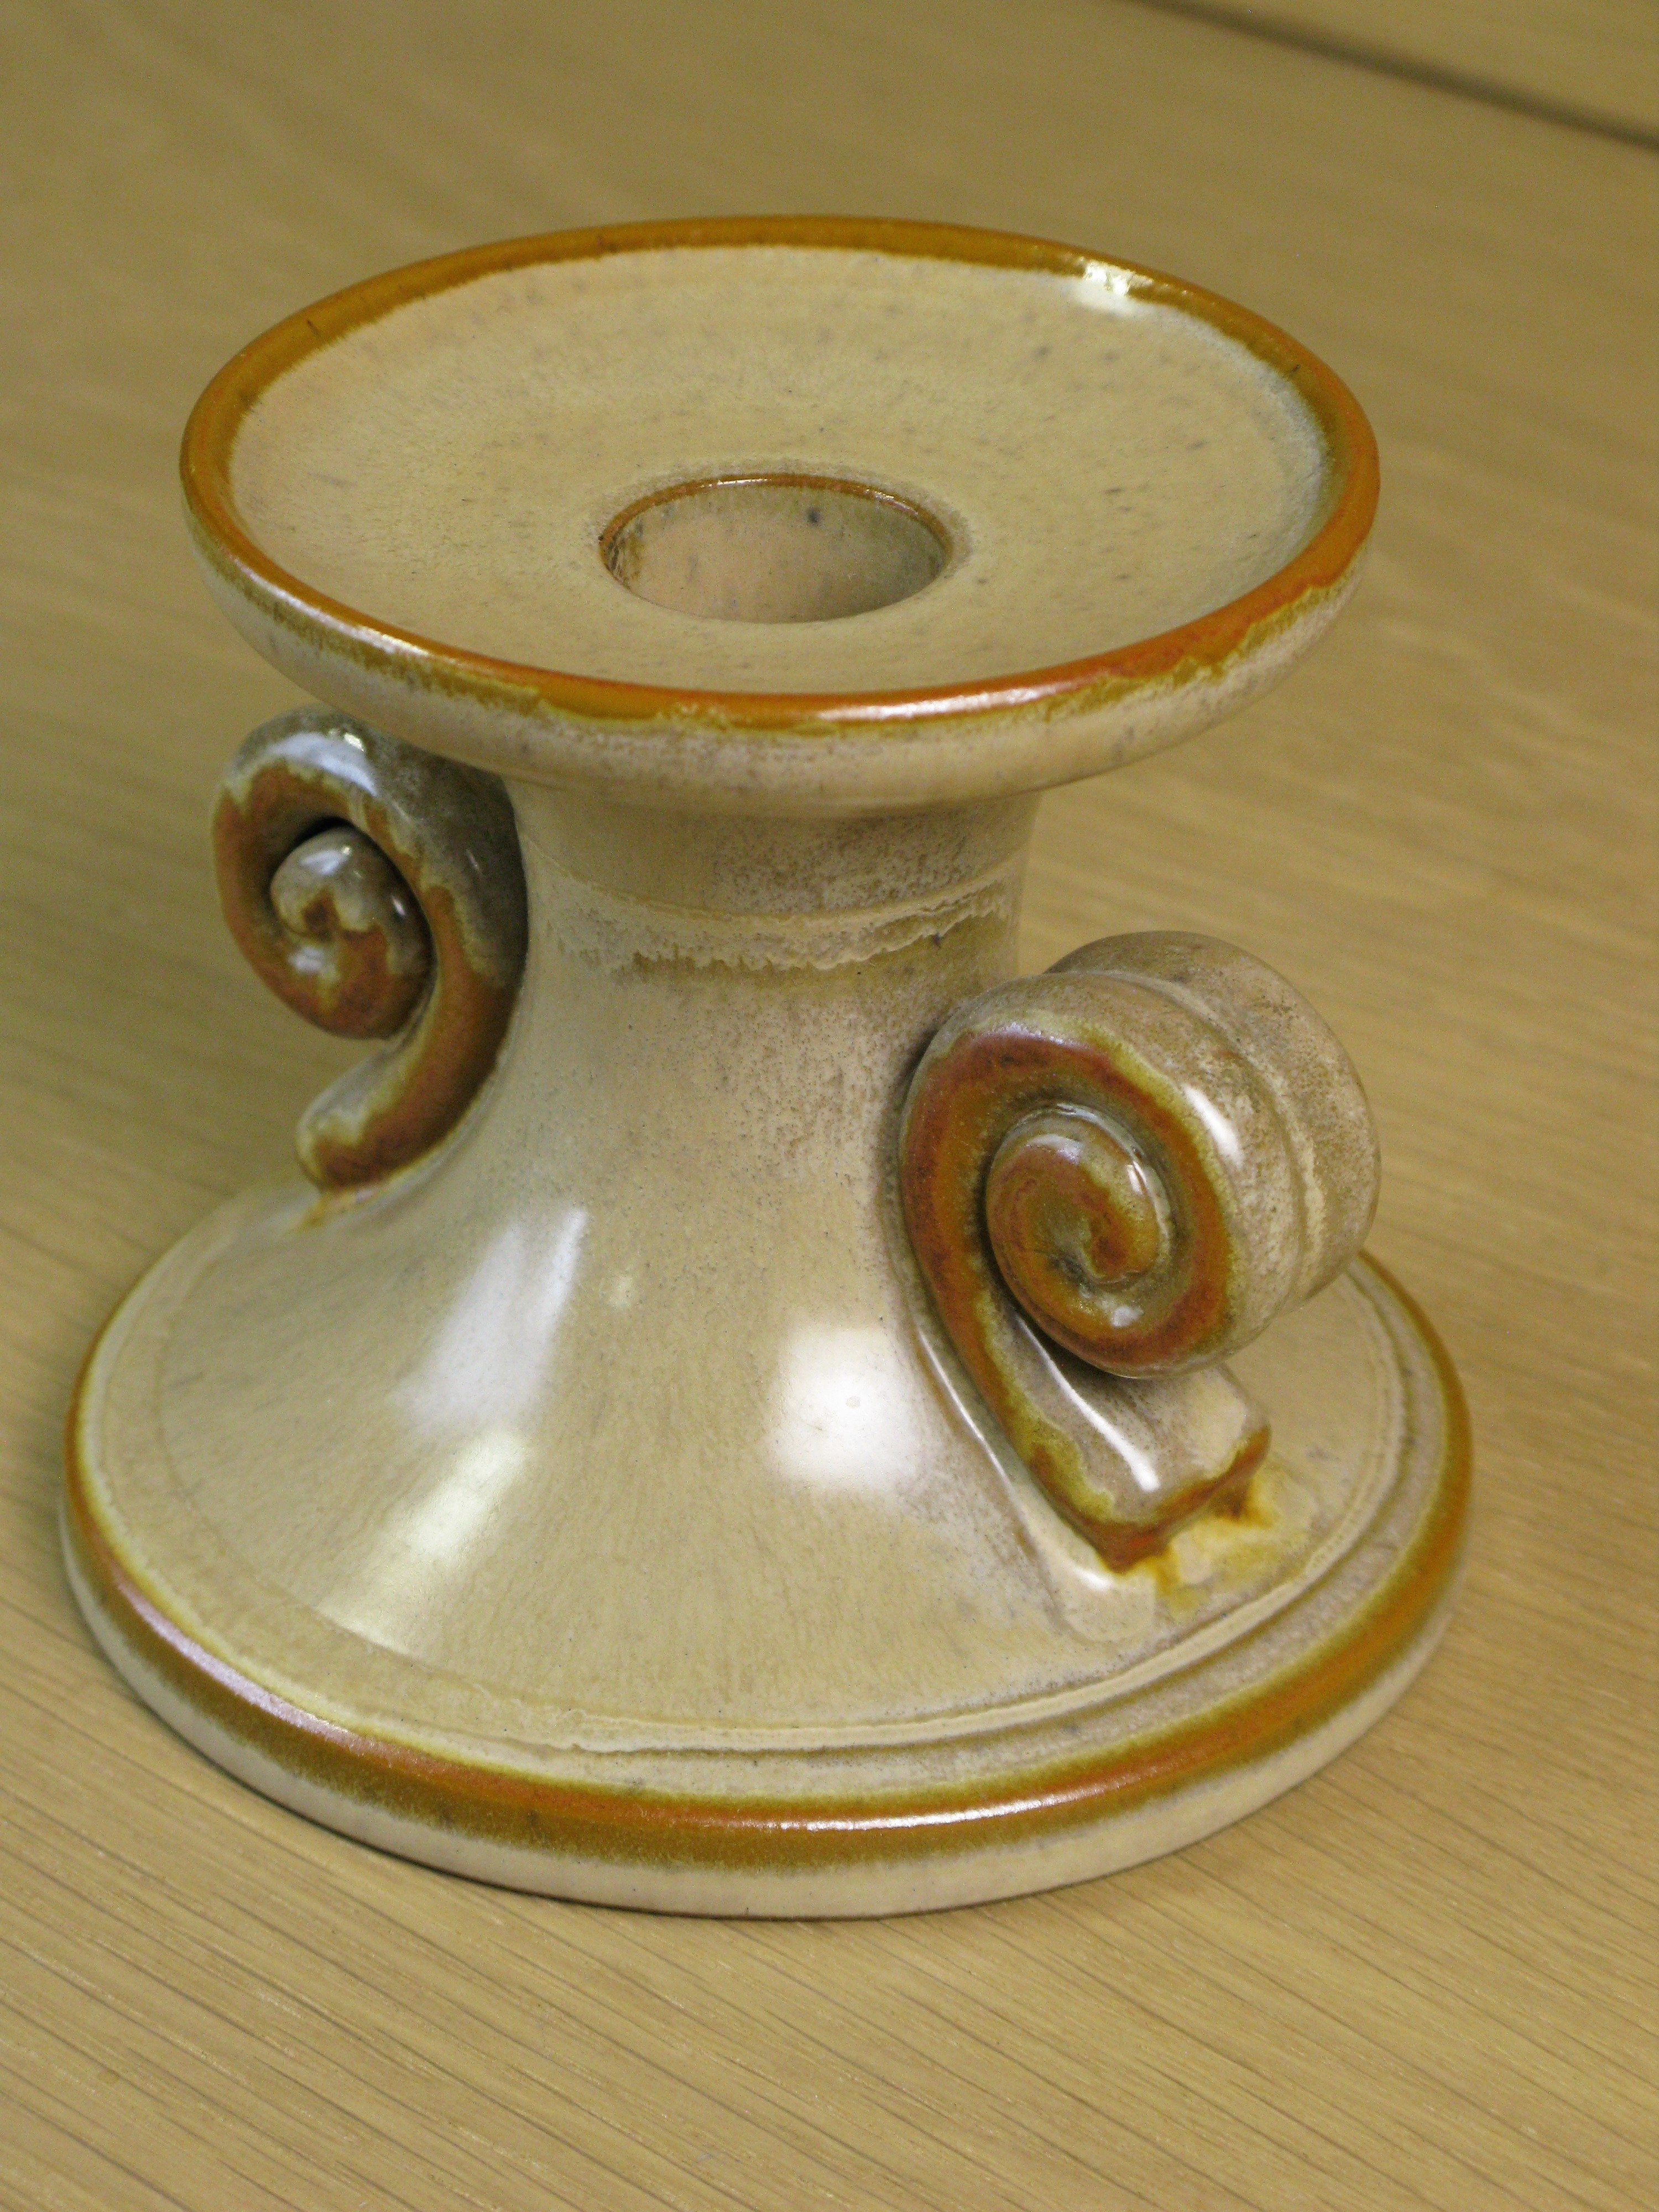 brownish candlestick